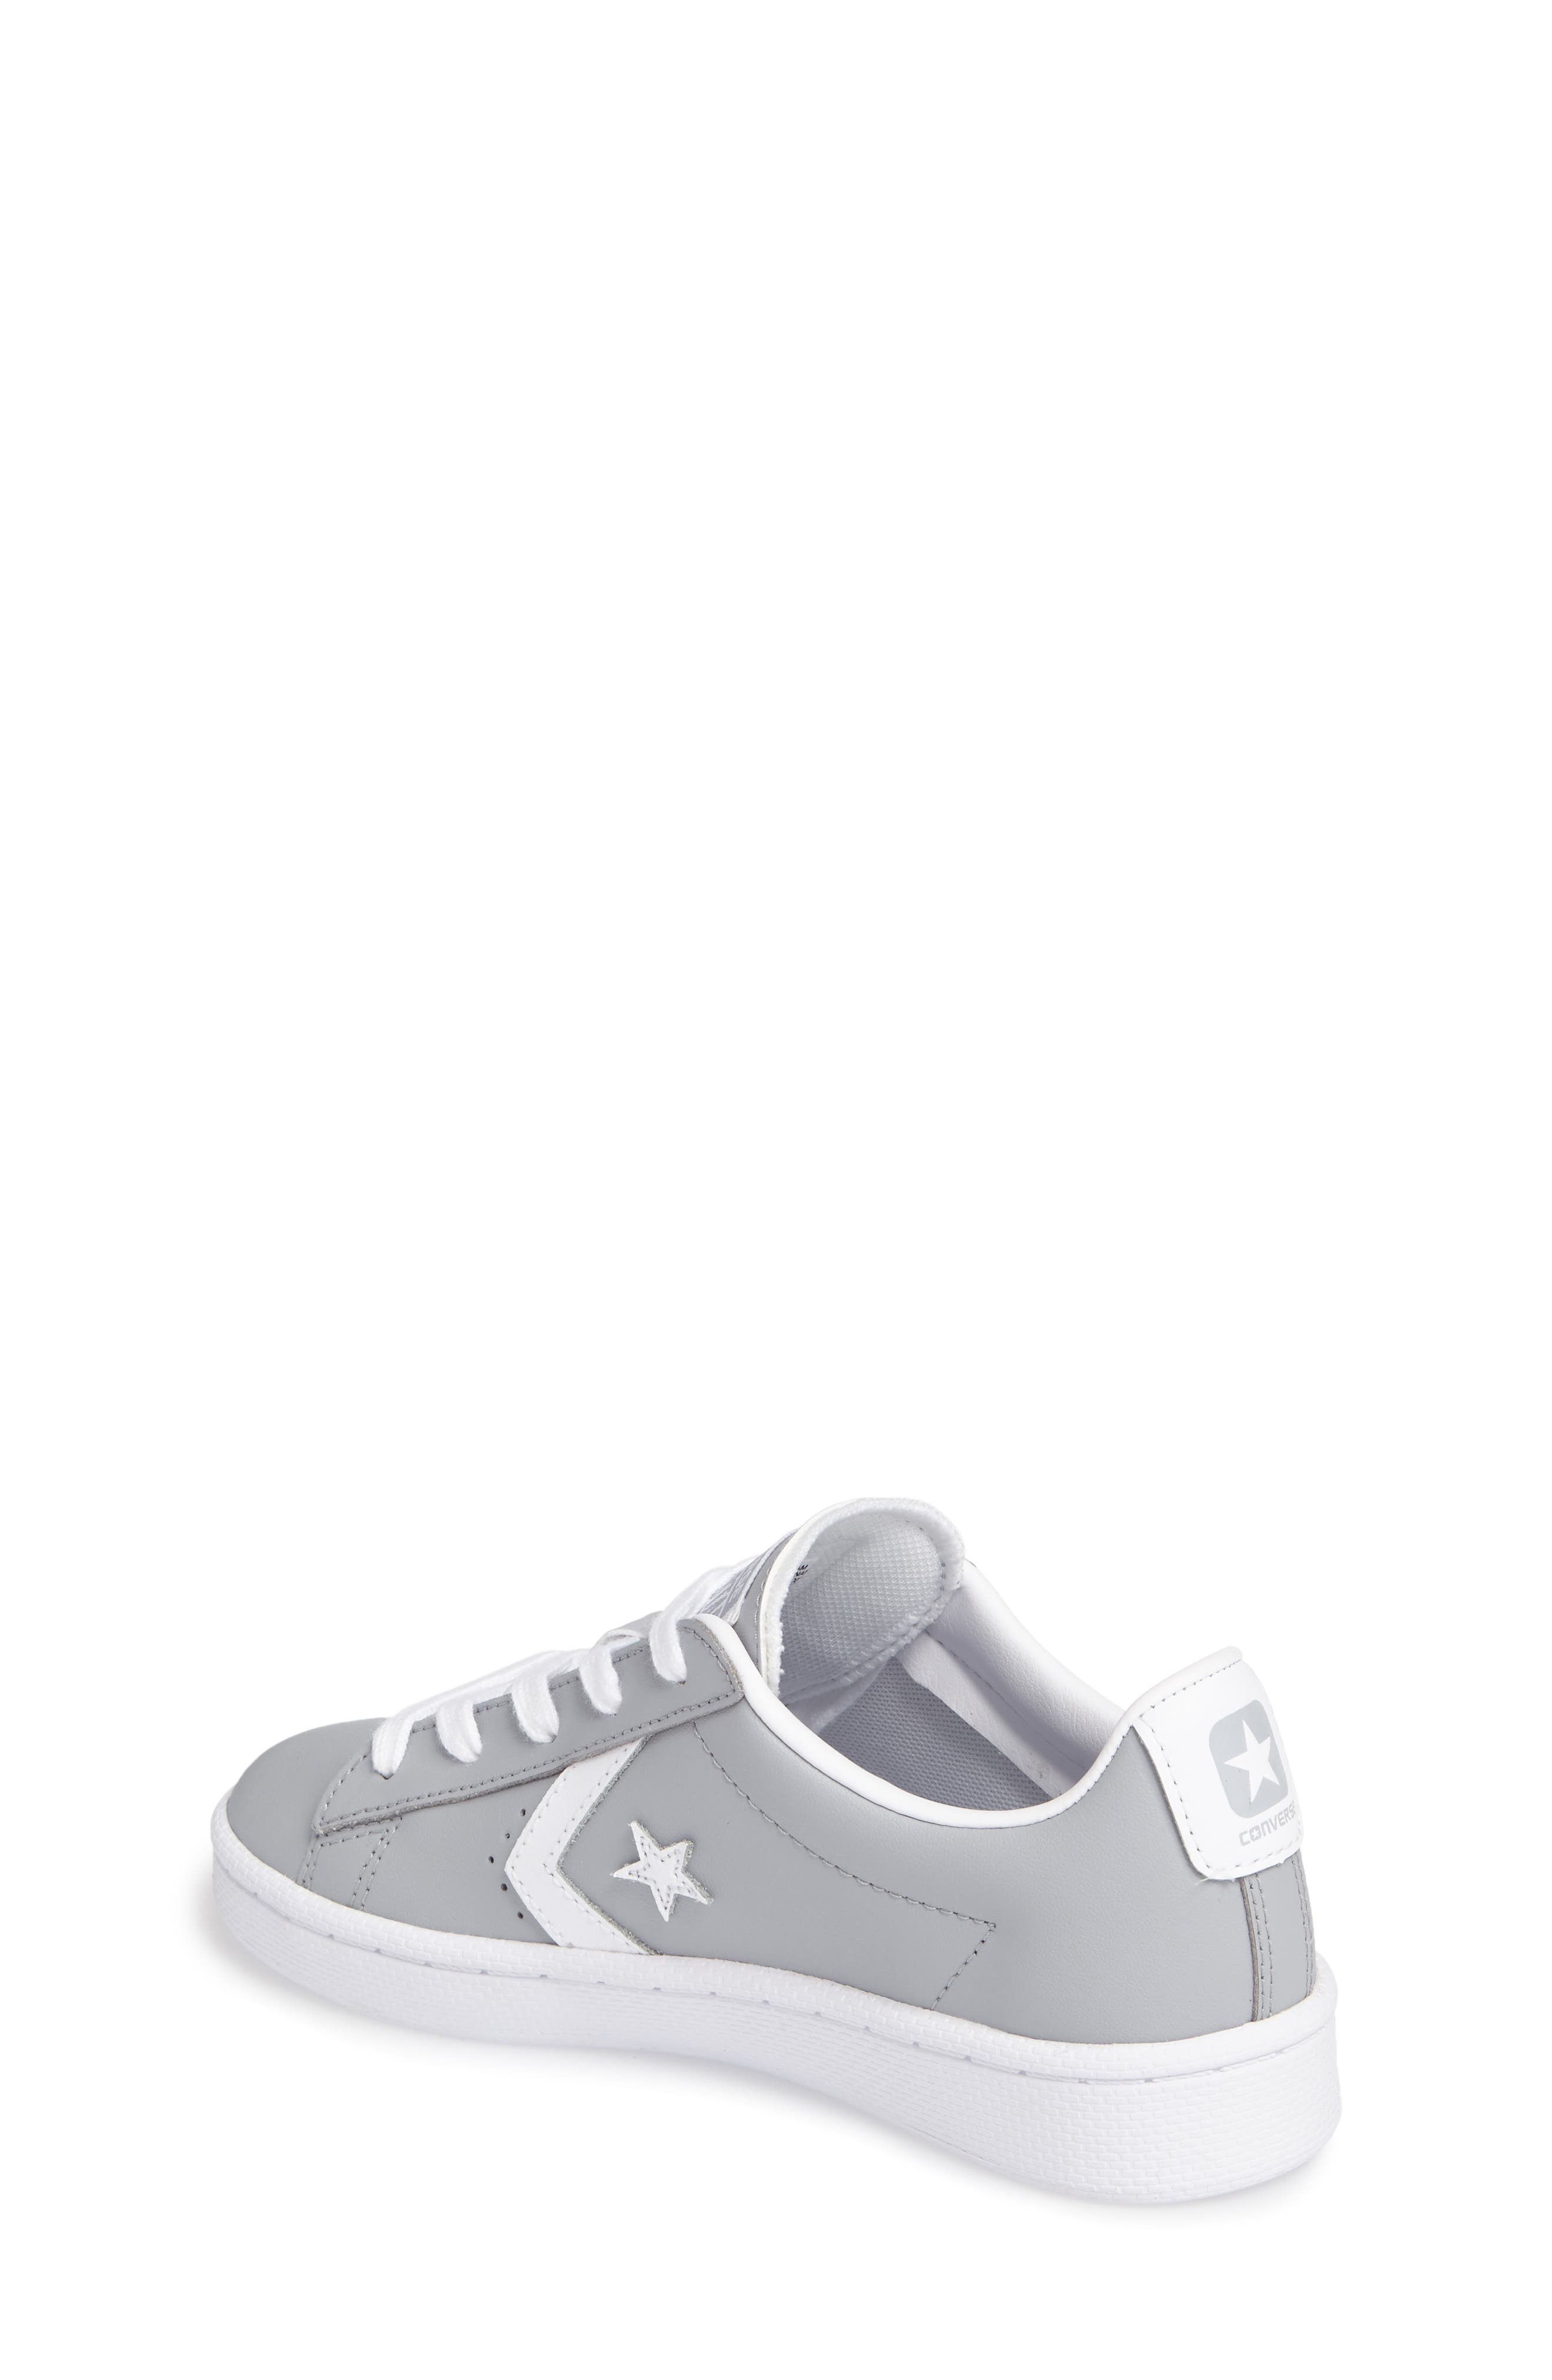 All Star<sup>®</sup> Pro Leather Low Top Sneaker,                             Alternate thumbnail 2, color,                             Wolf Grey